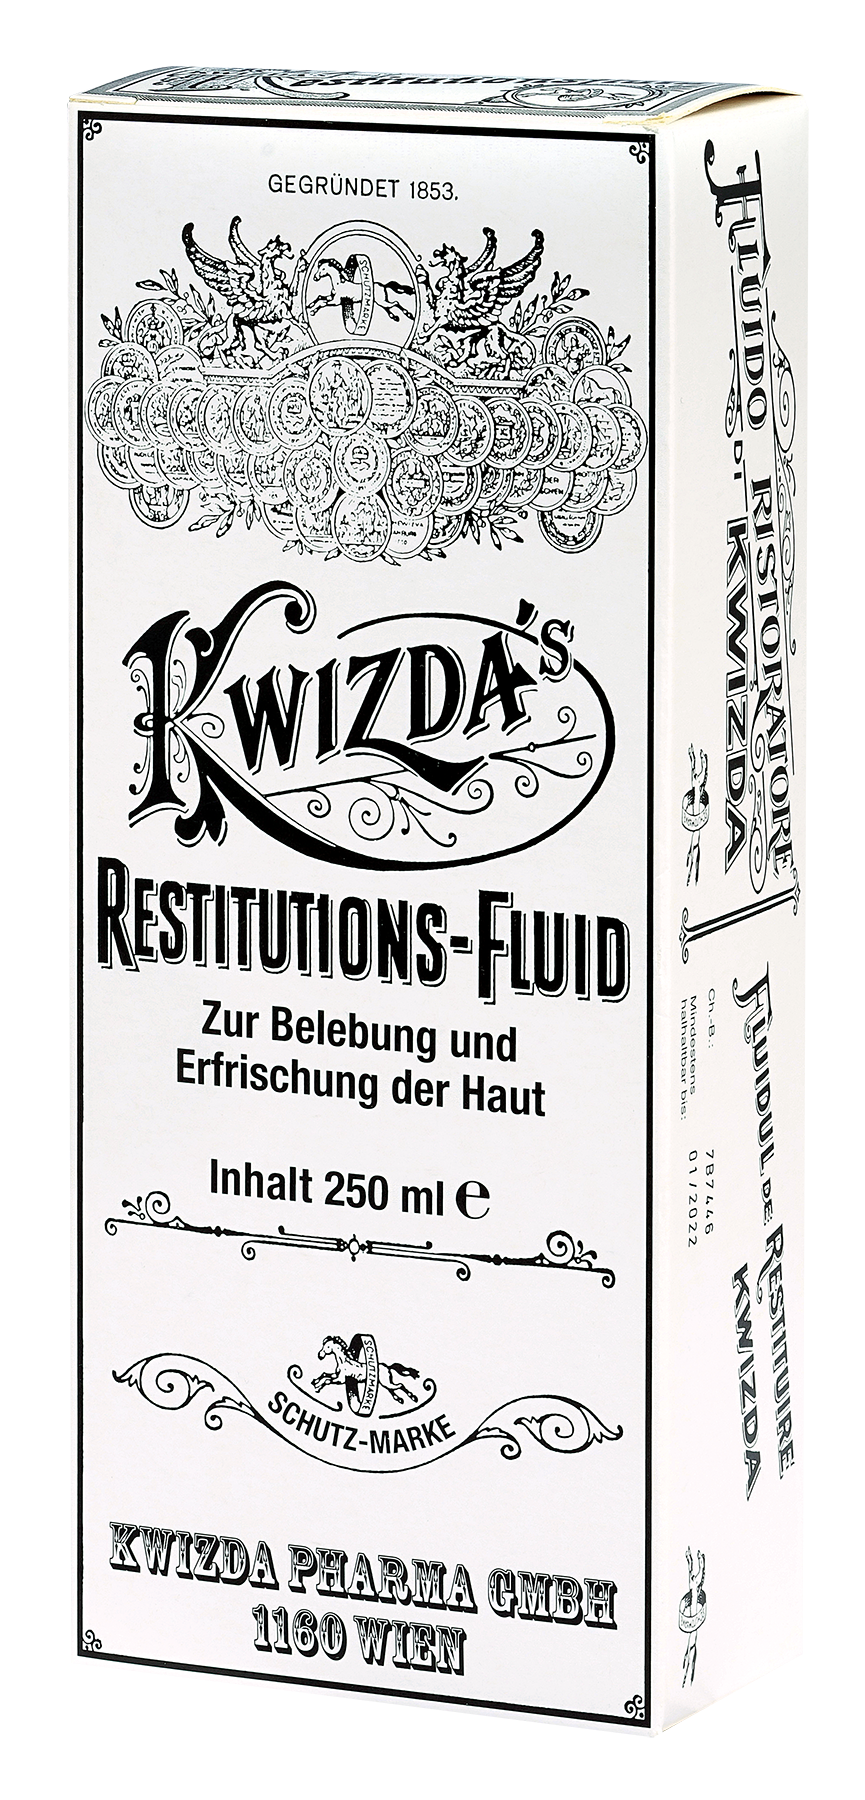 Kwizda's Restitutionsfluid